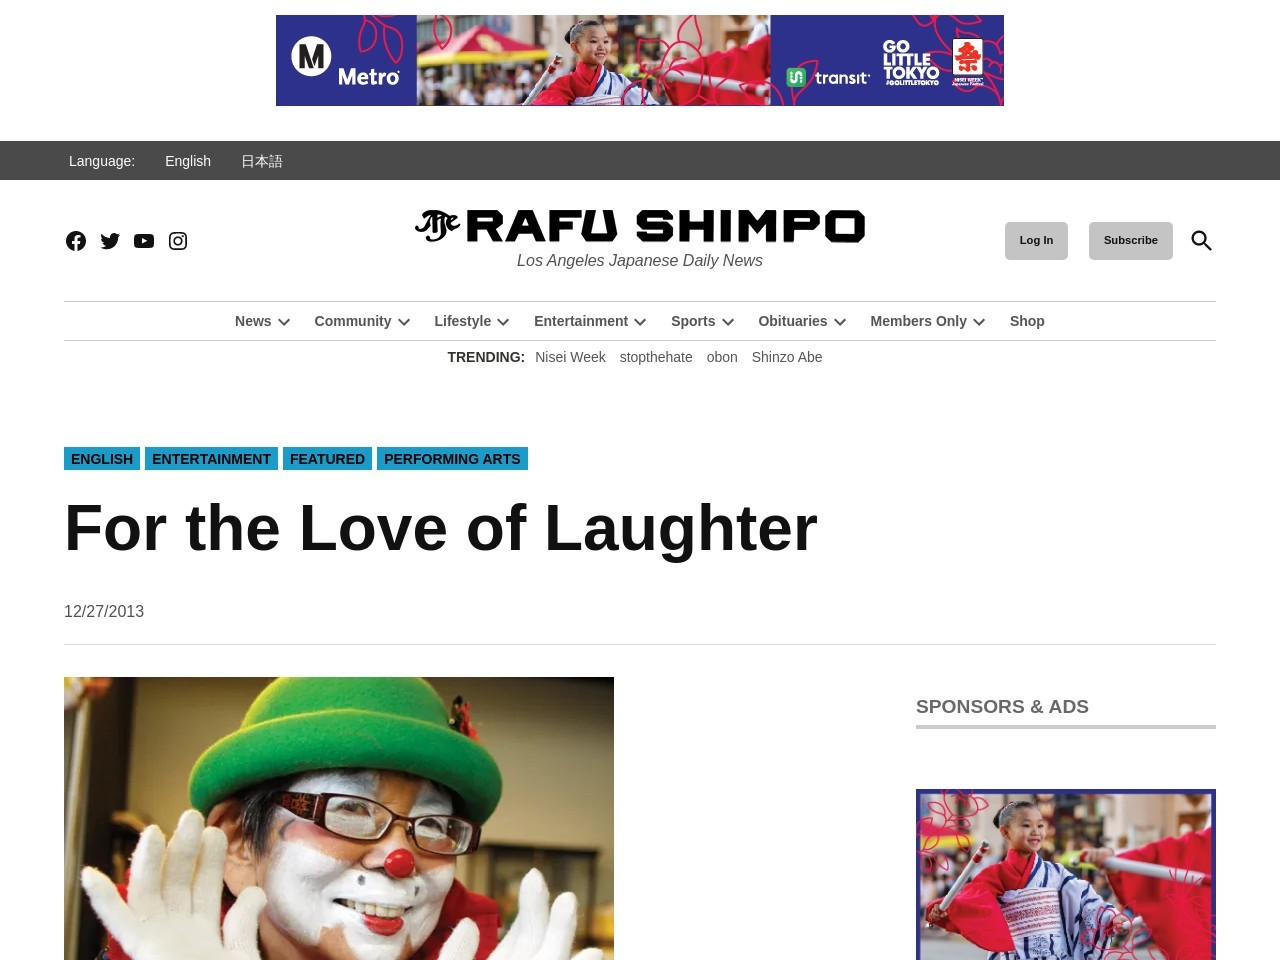 For the Love of Laughter